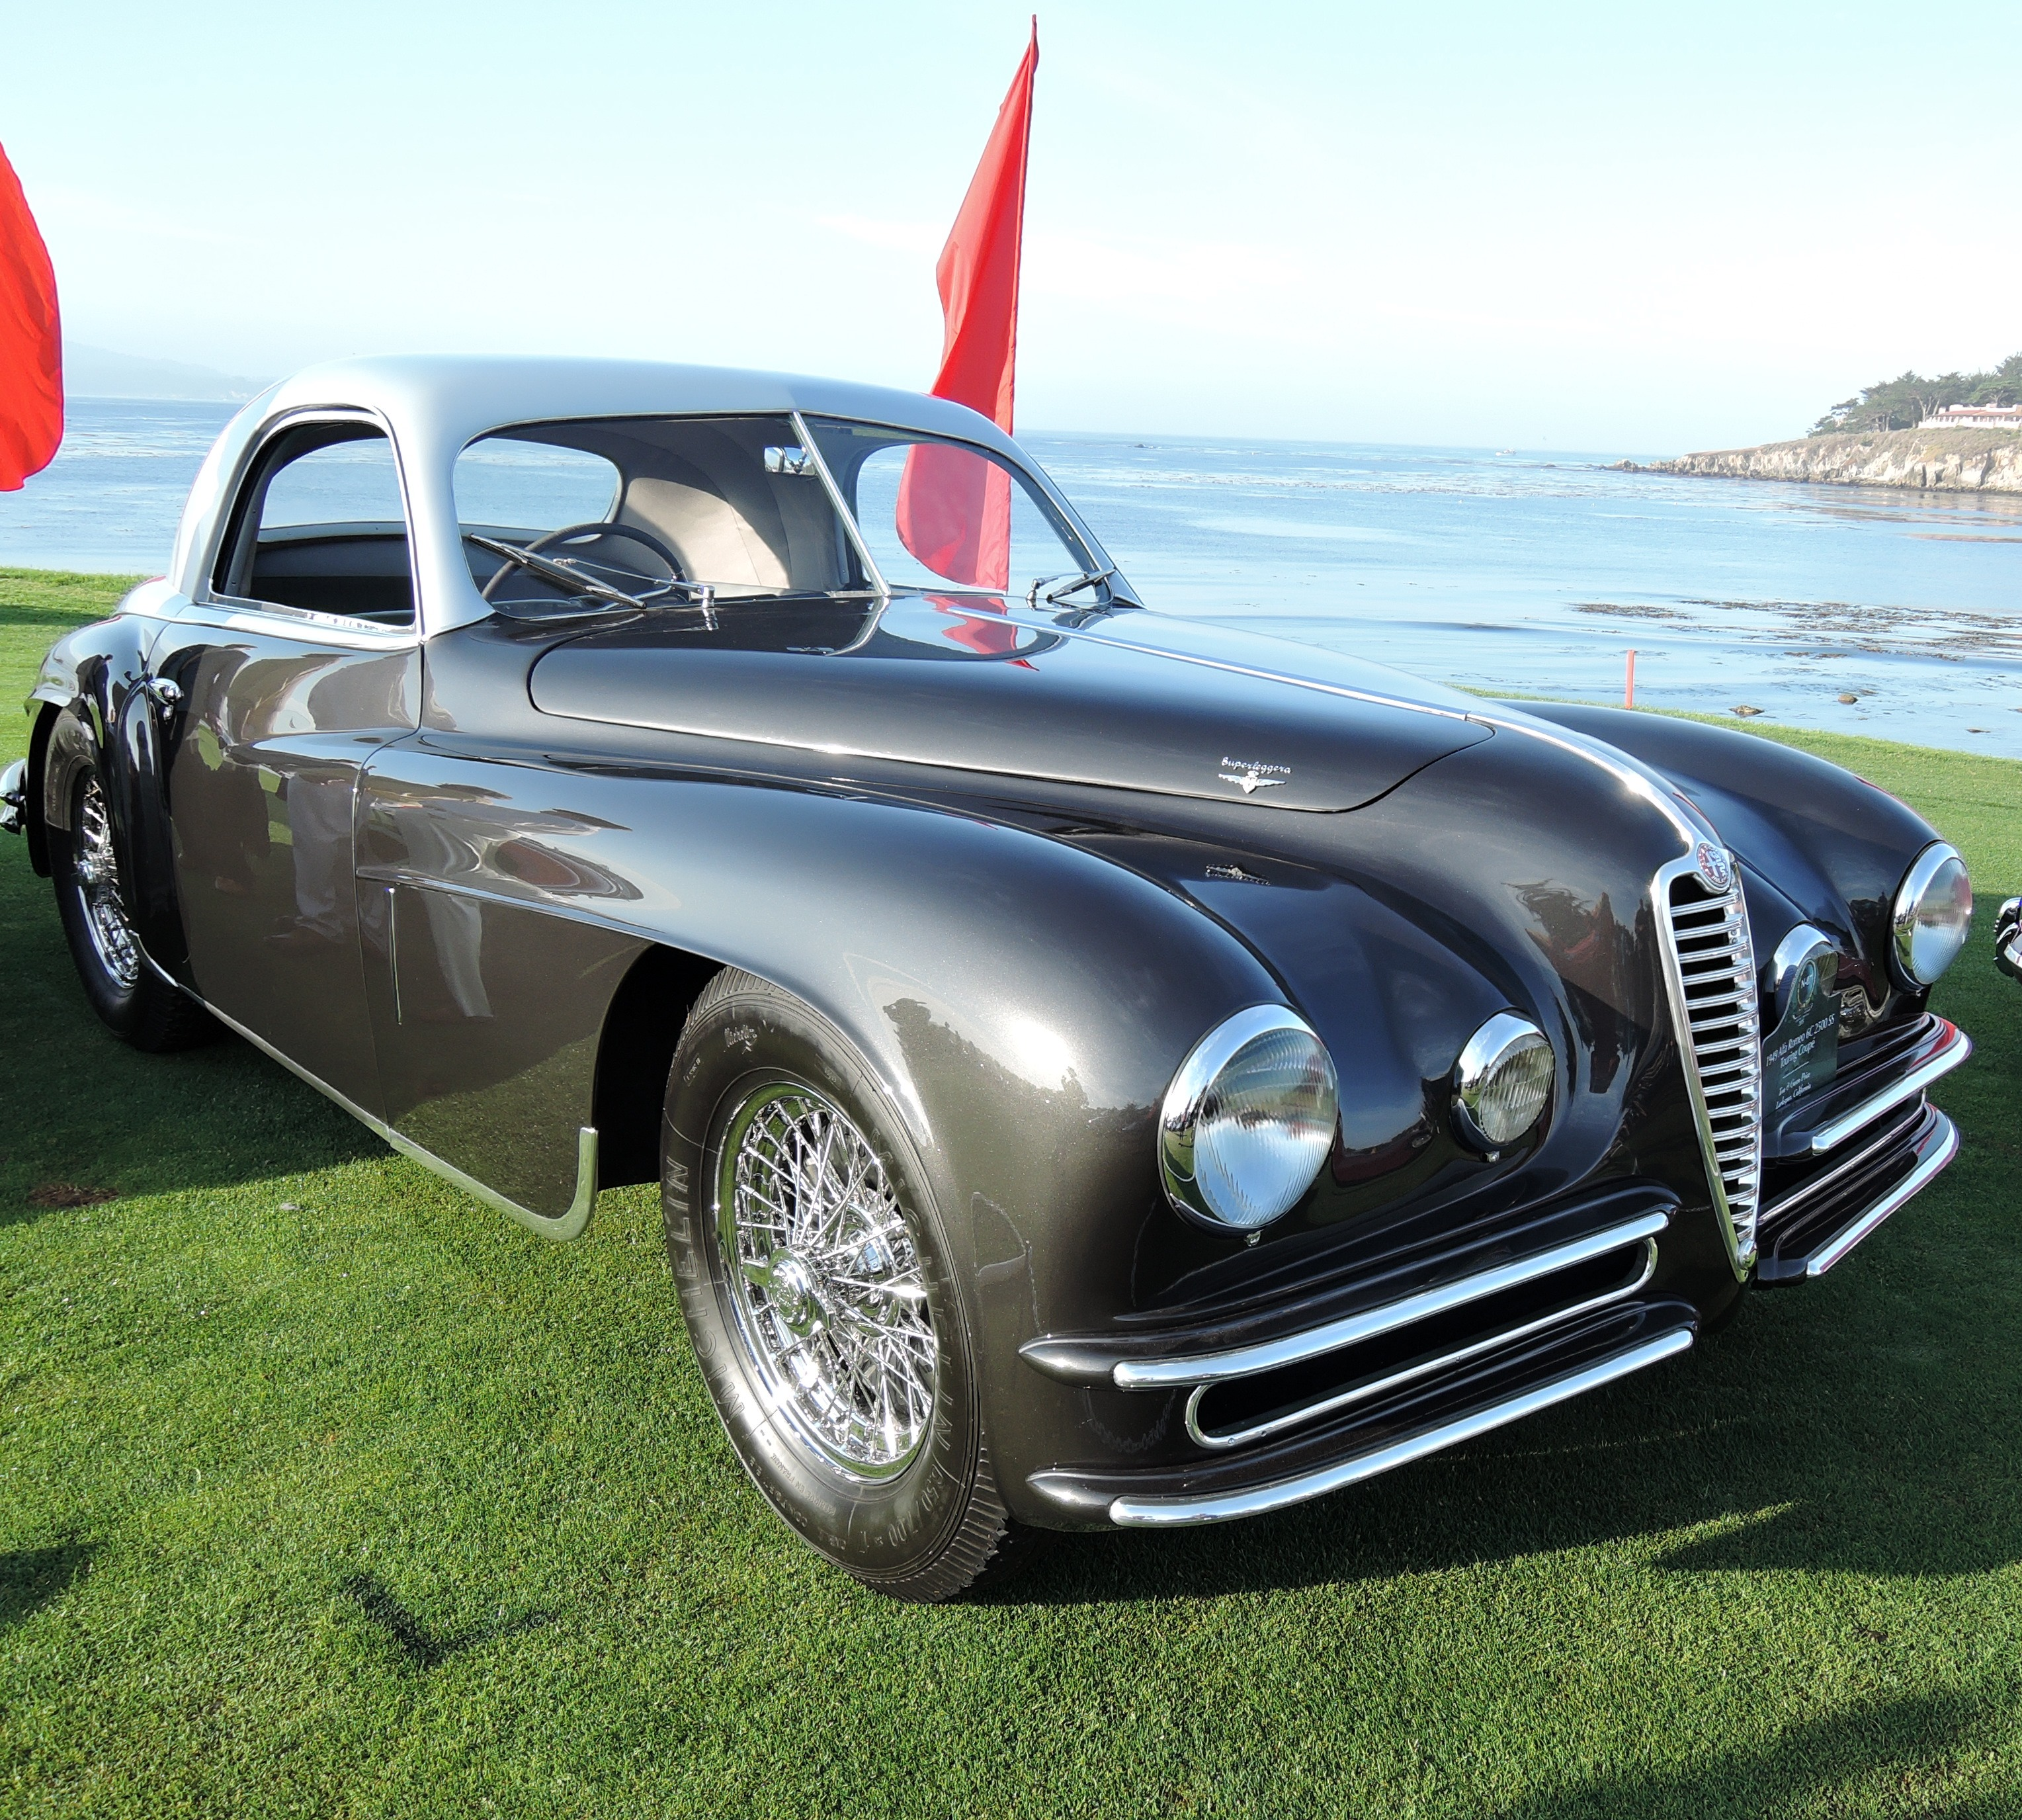 grey 1949 Alfa Romeo 6C 2500 SS Touring Coupe - concours d'elegance